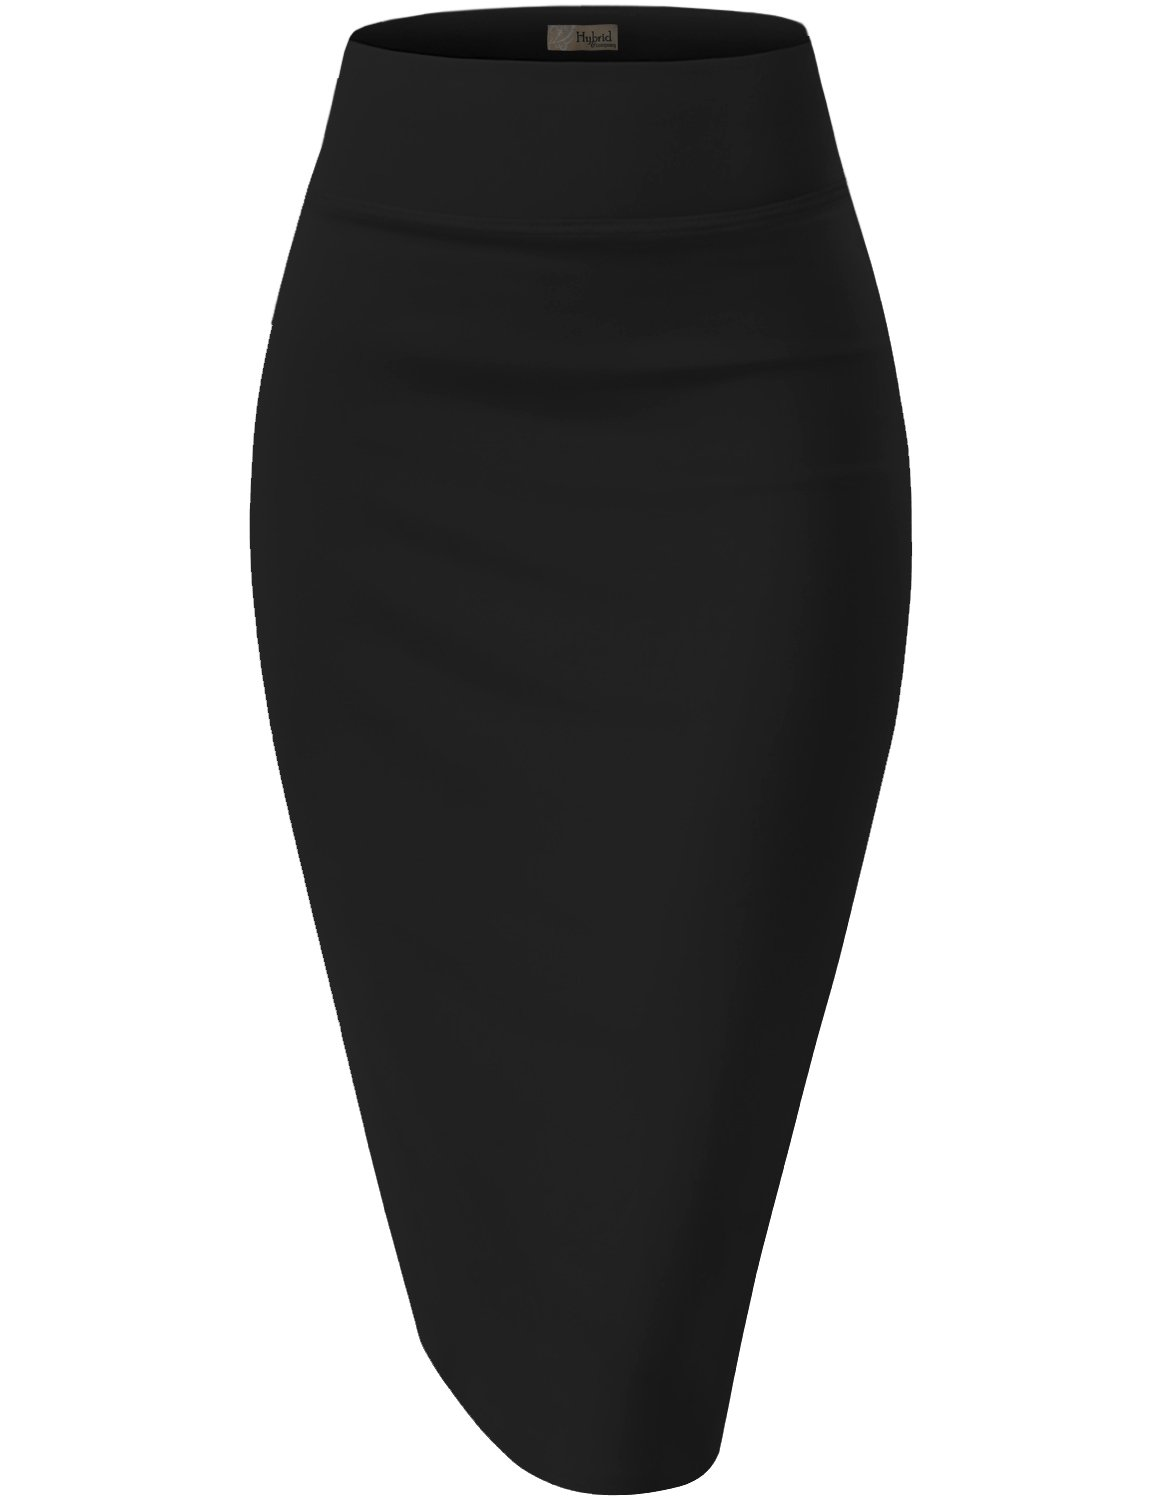 Womens Pencil Skirt For Office Wear KSK43584 1139 Black S